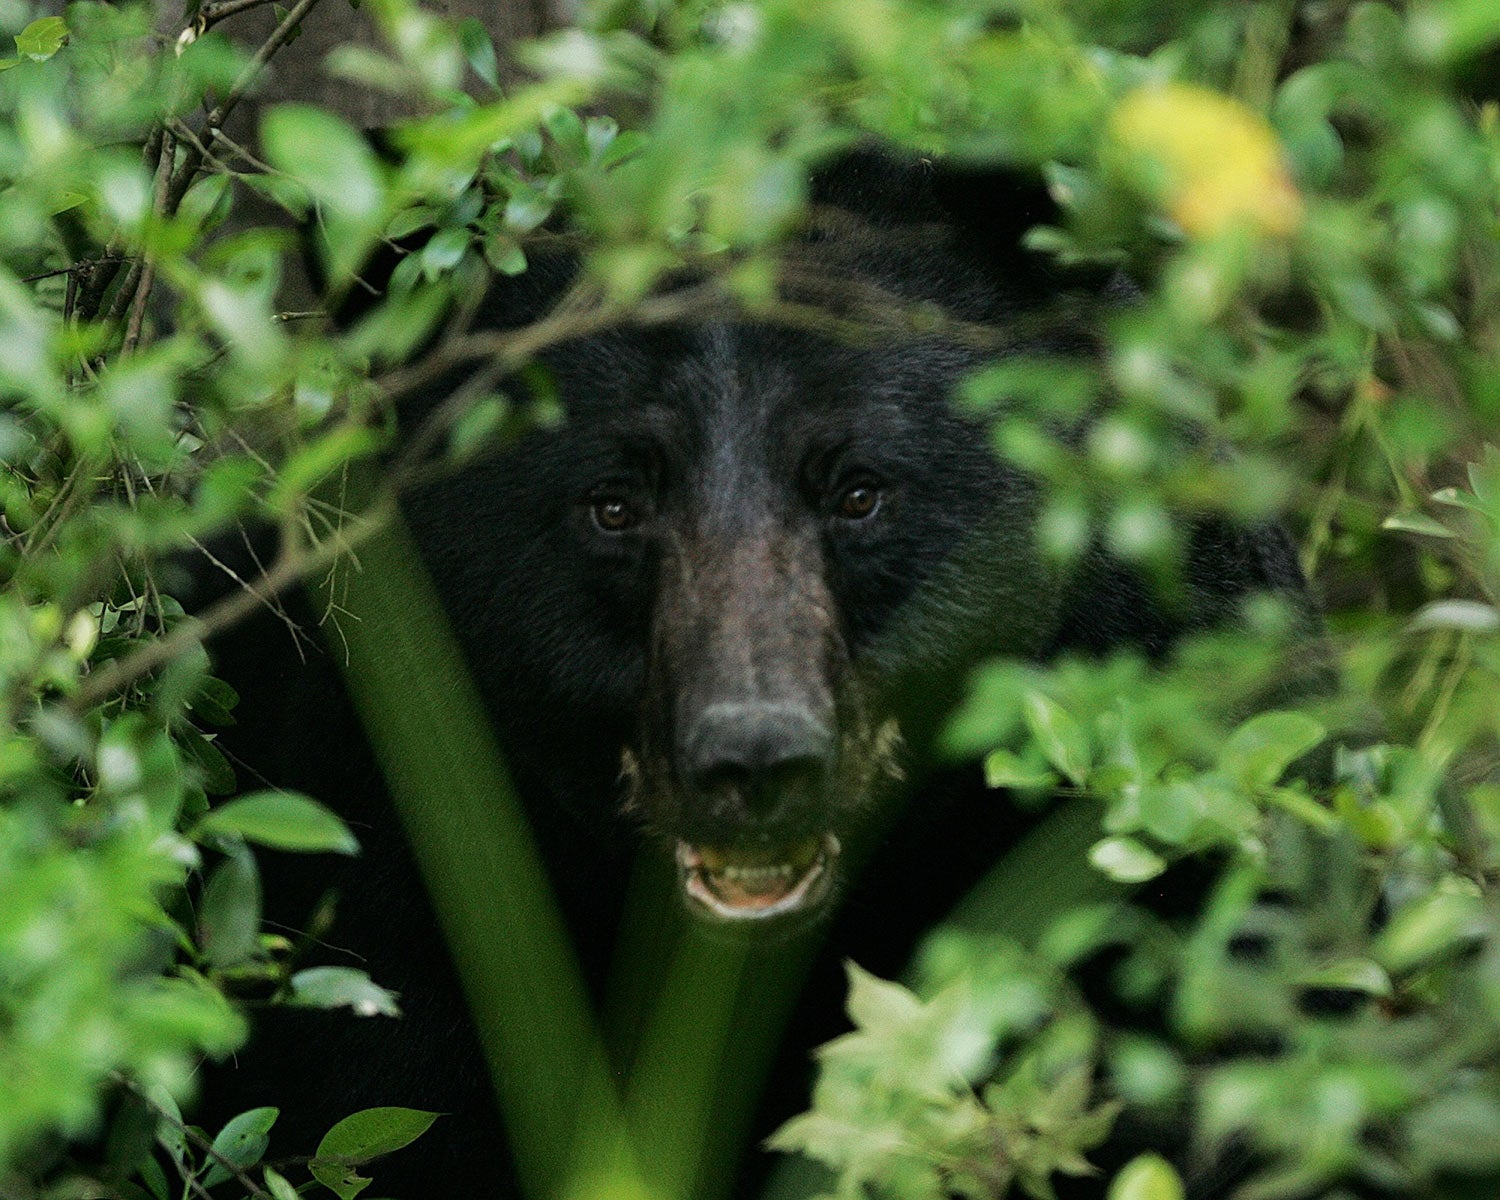 A black bear hiding in brush cover